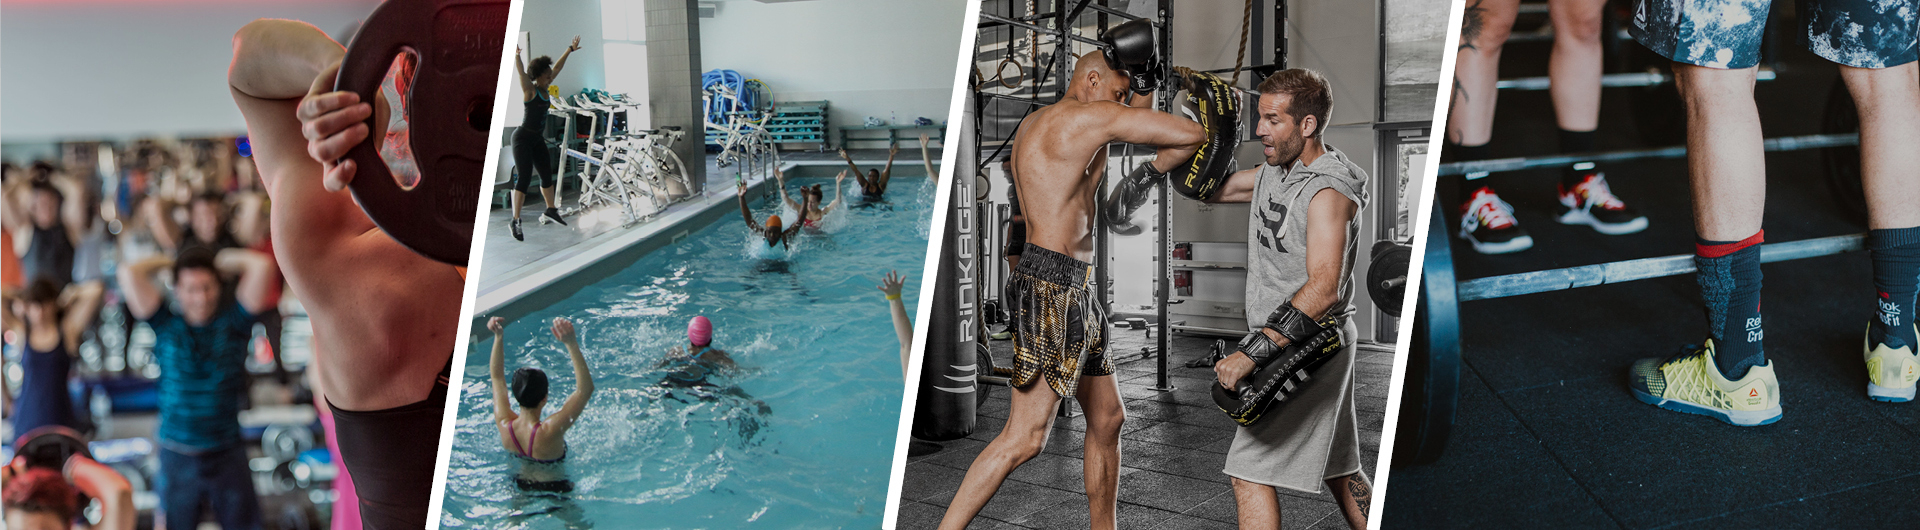 Sporting Form Toulouse | Salle De Sport Toulouse : Fitness ... concernant Musculation Piscine